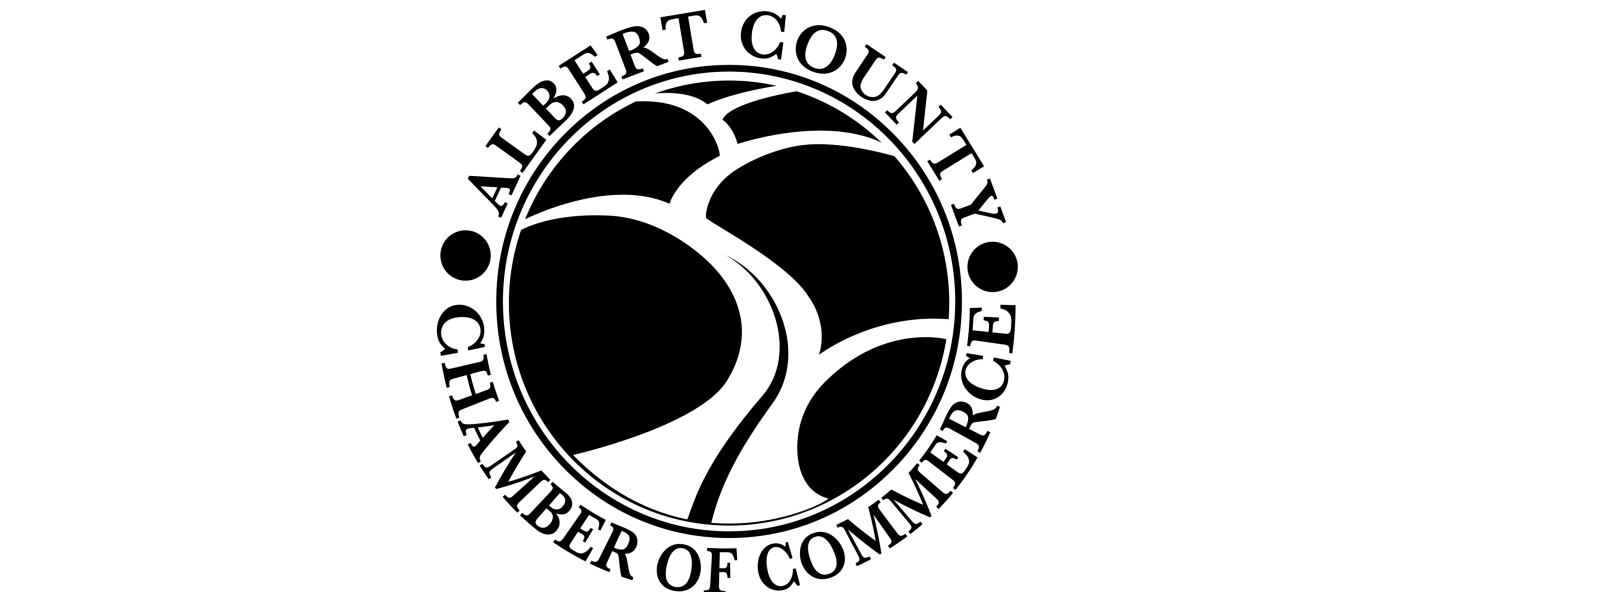 Albert County Chamber of Commerce